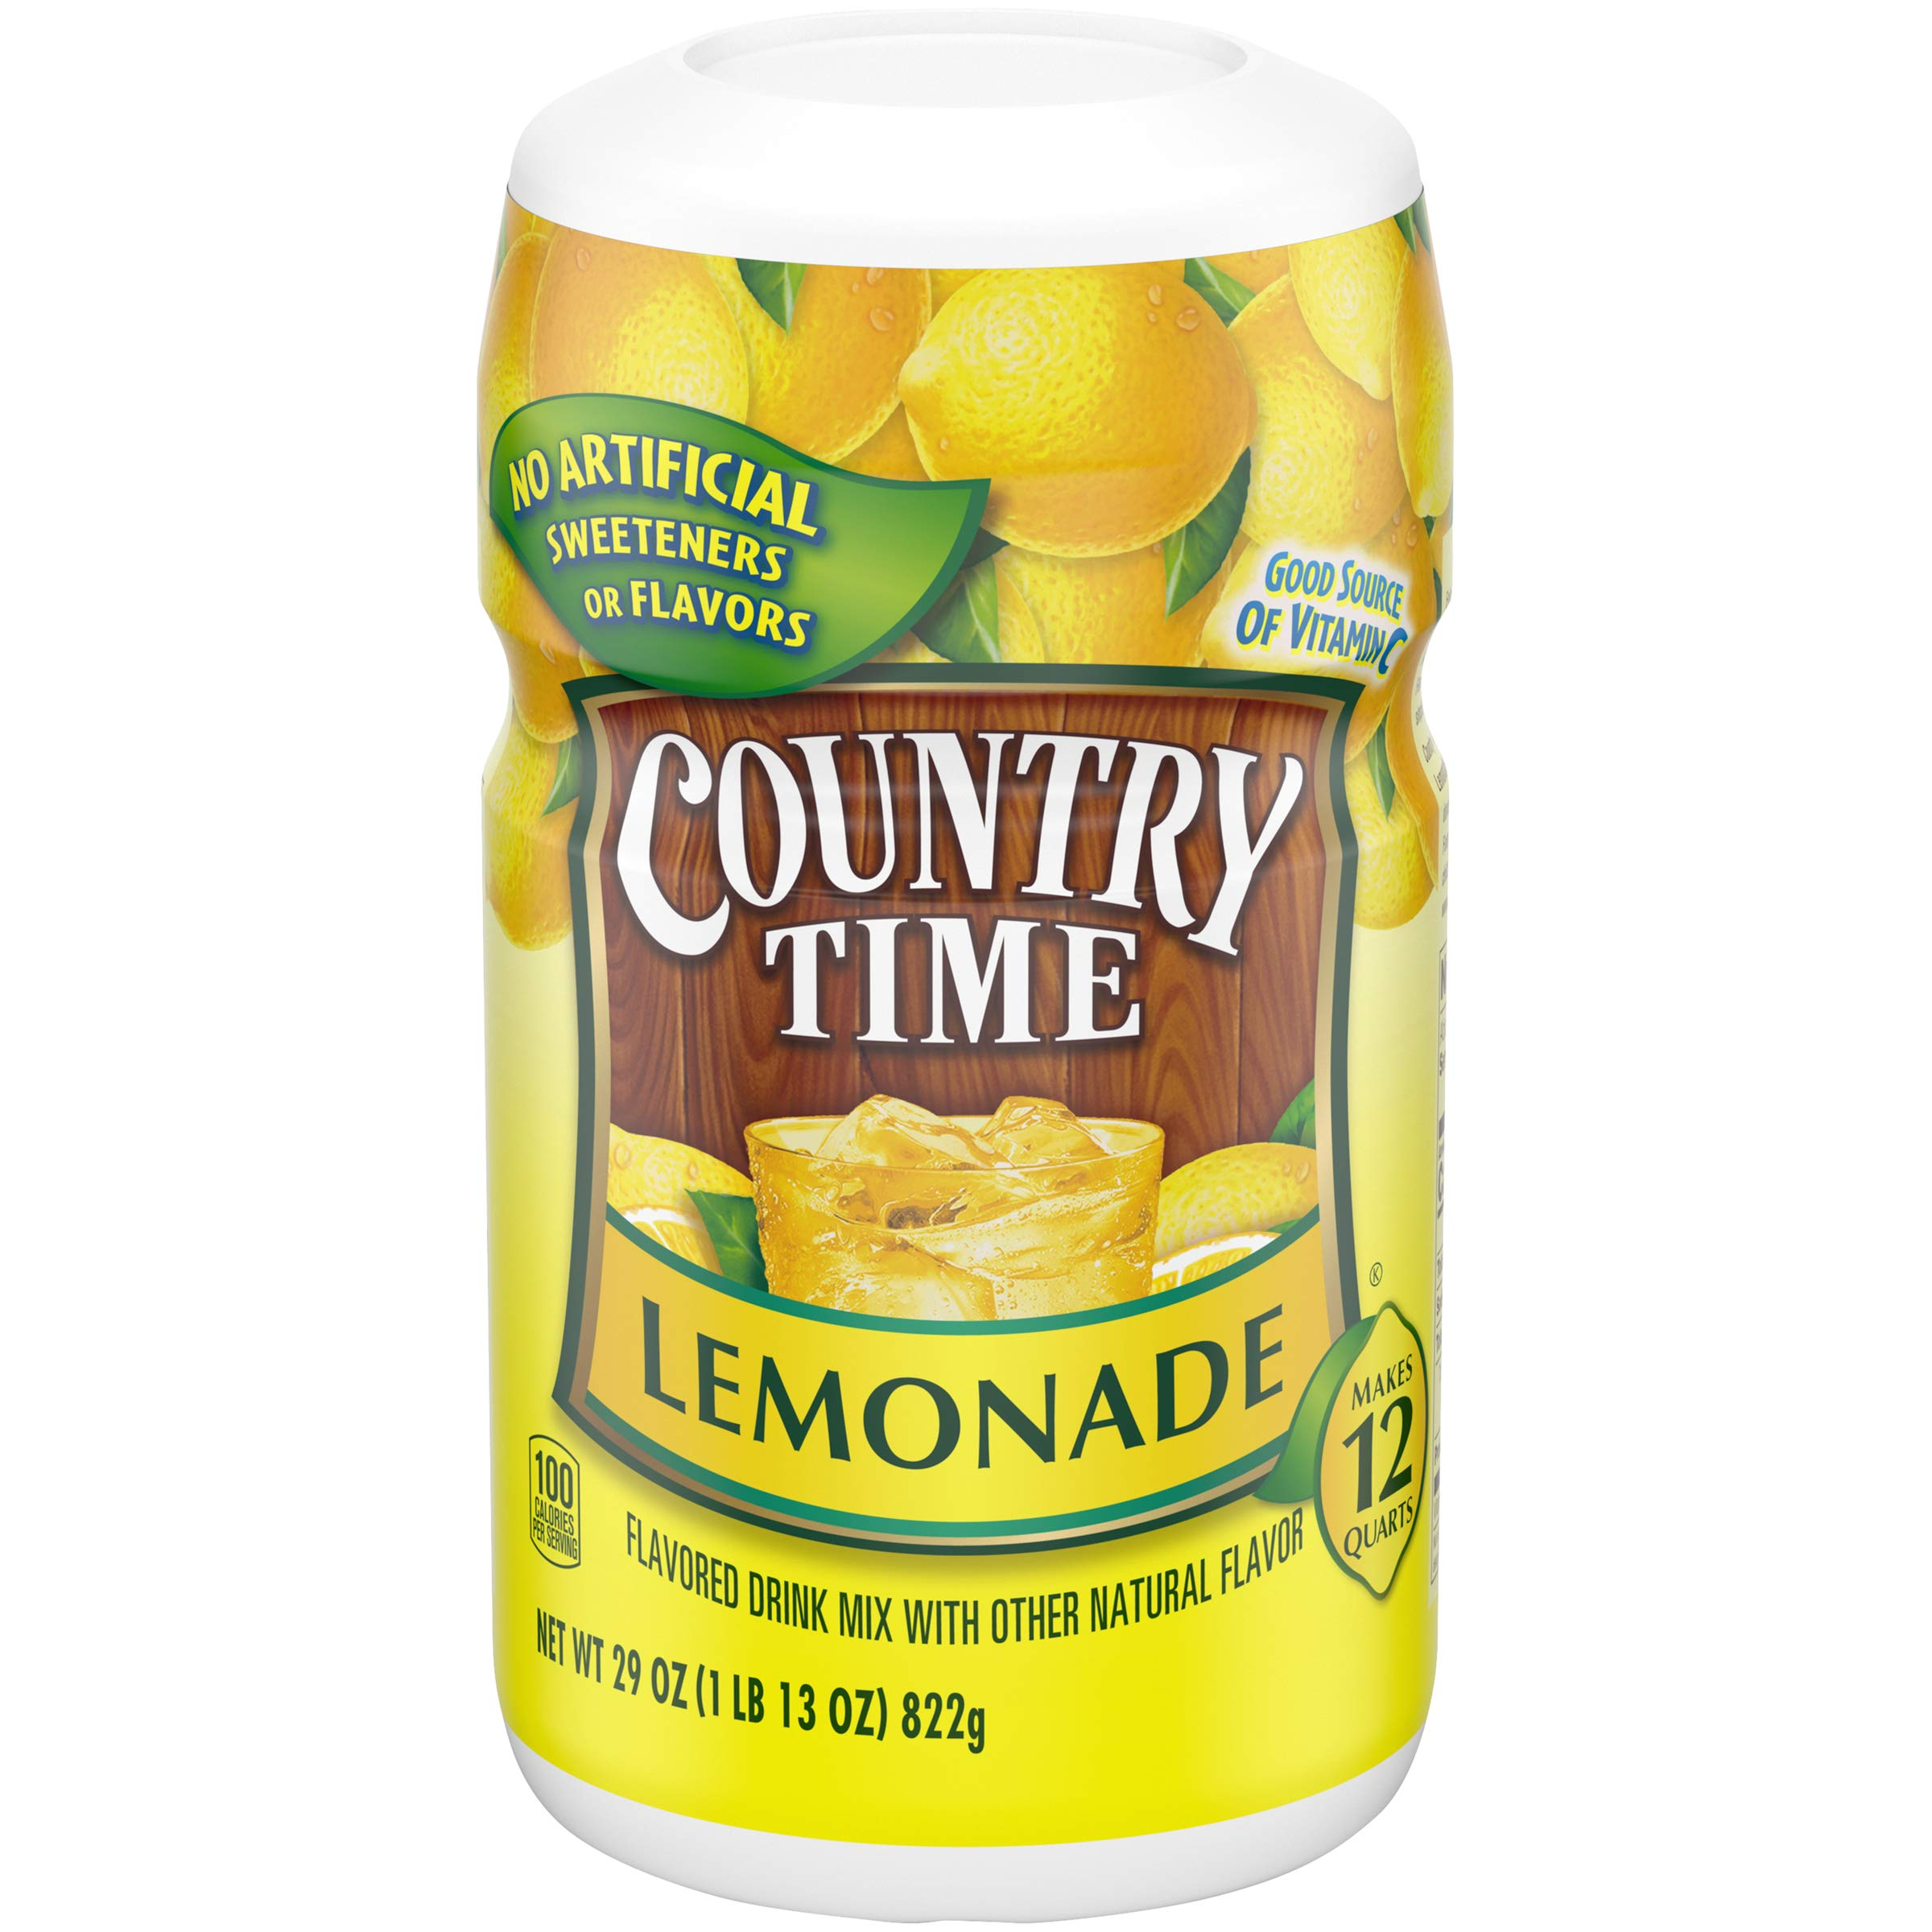 Country Time Lemonade Powdered Drink Mix (29 oz Canisters, Pack of 4)